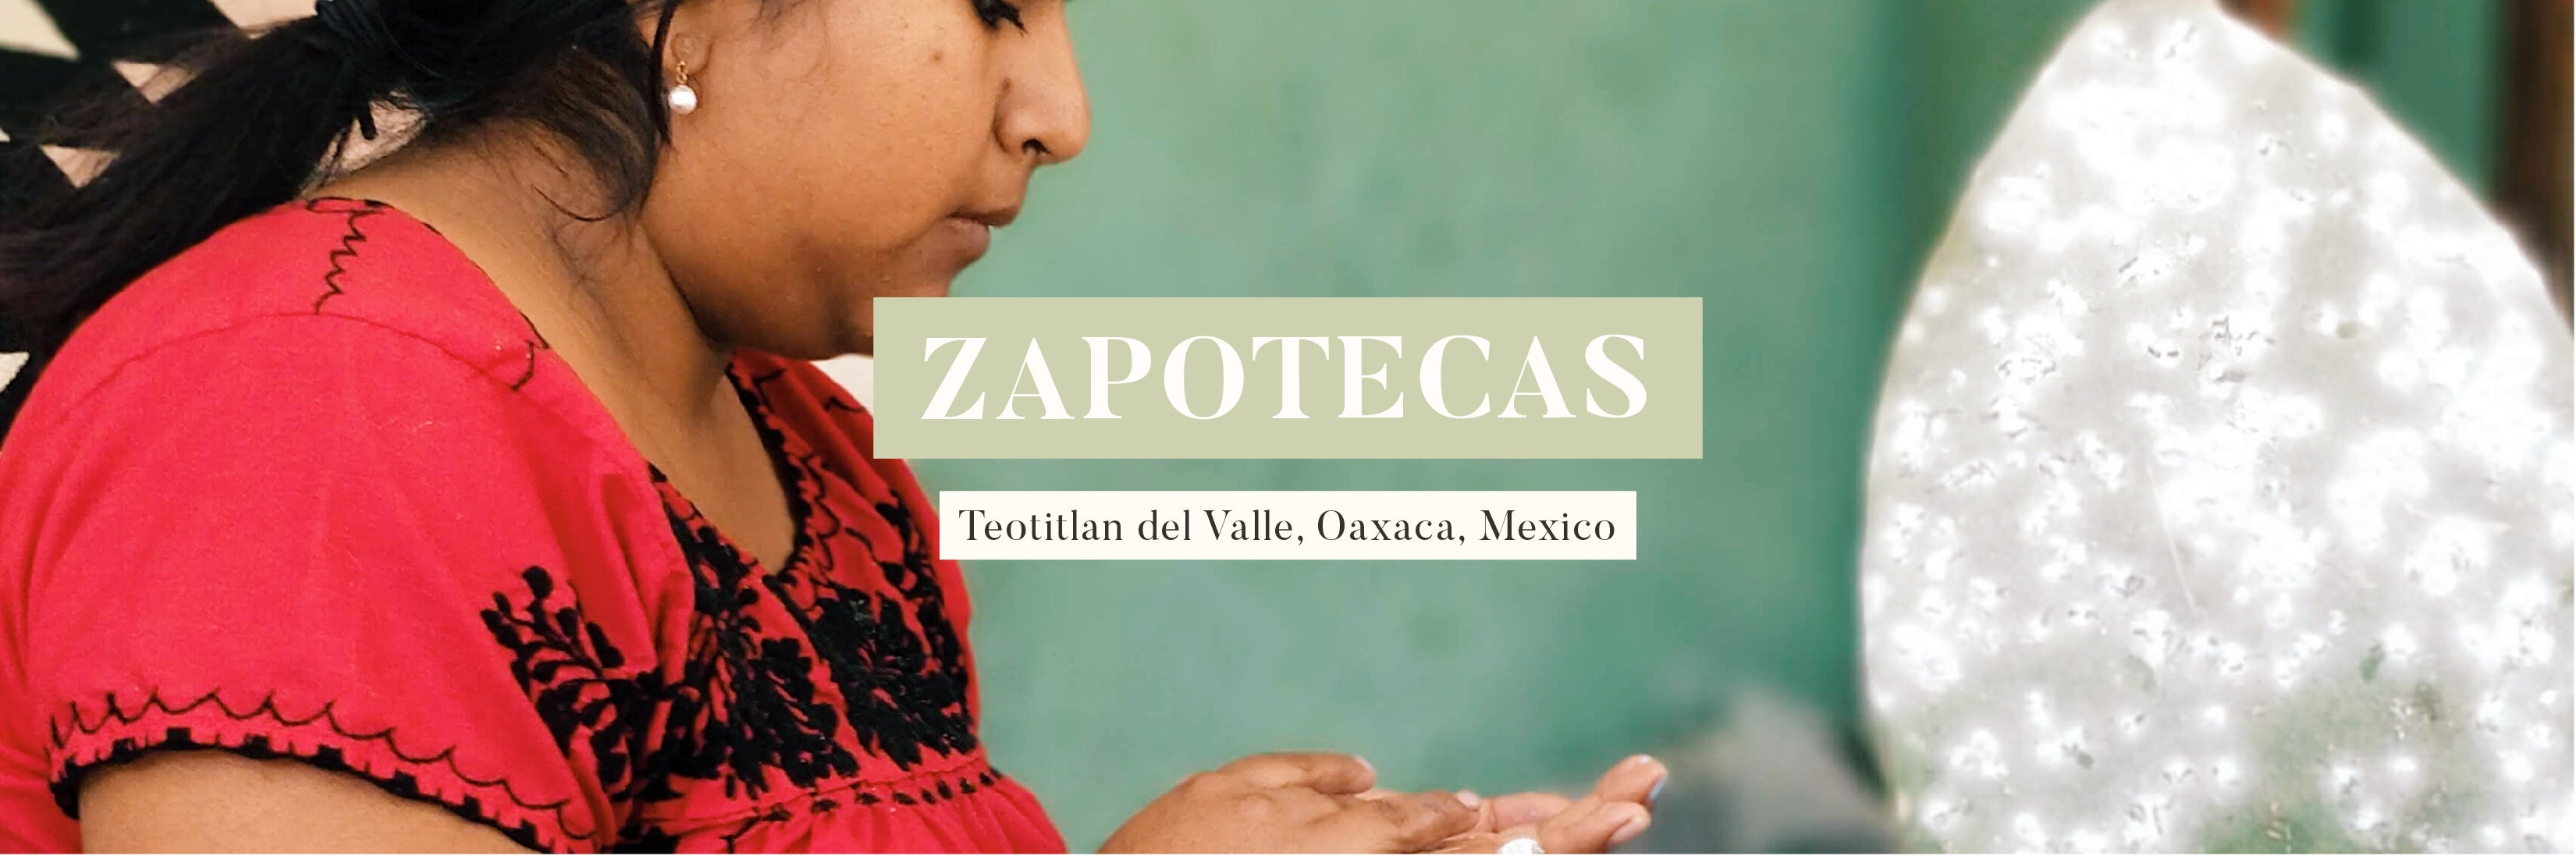 The Zapotecas